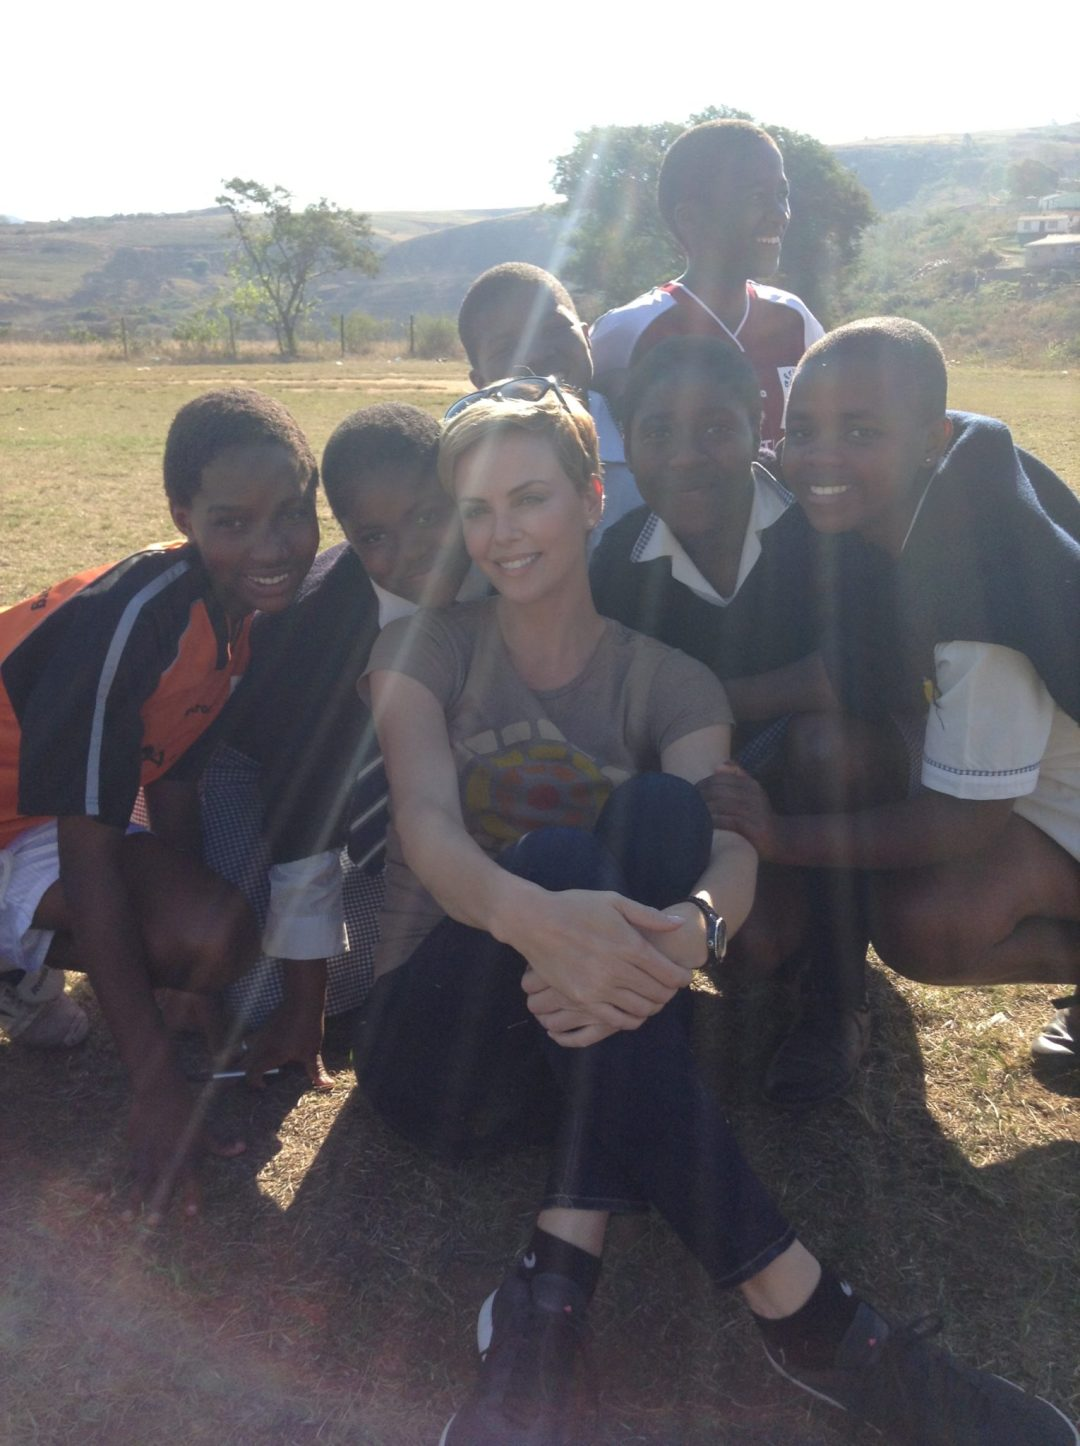 August 2013 visiting the WhizzKids United in Edendale, South Africa. Credit : Pati Dubroff